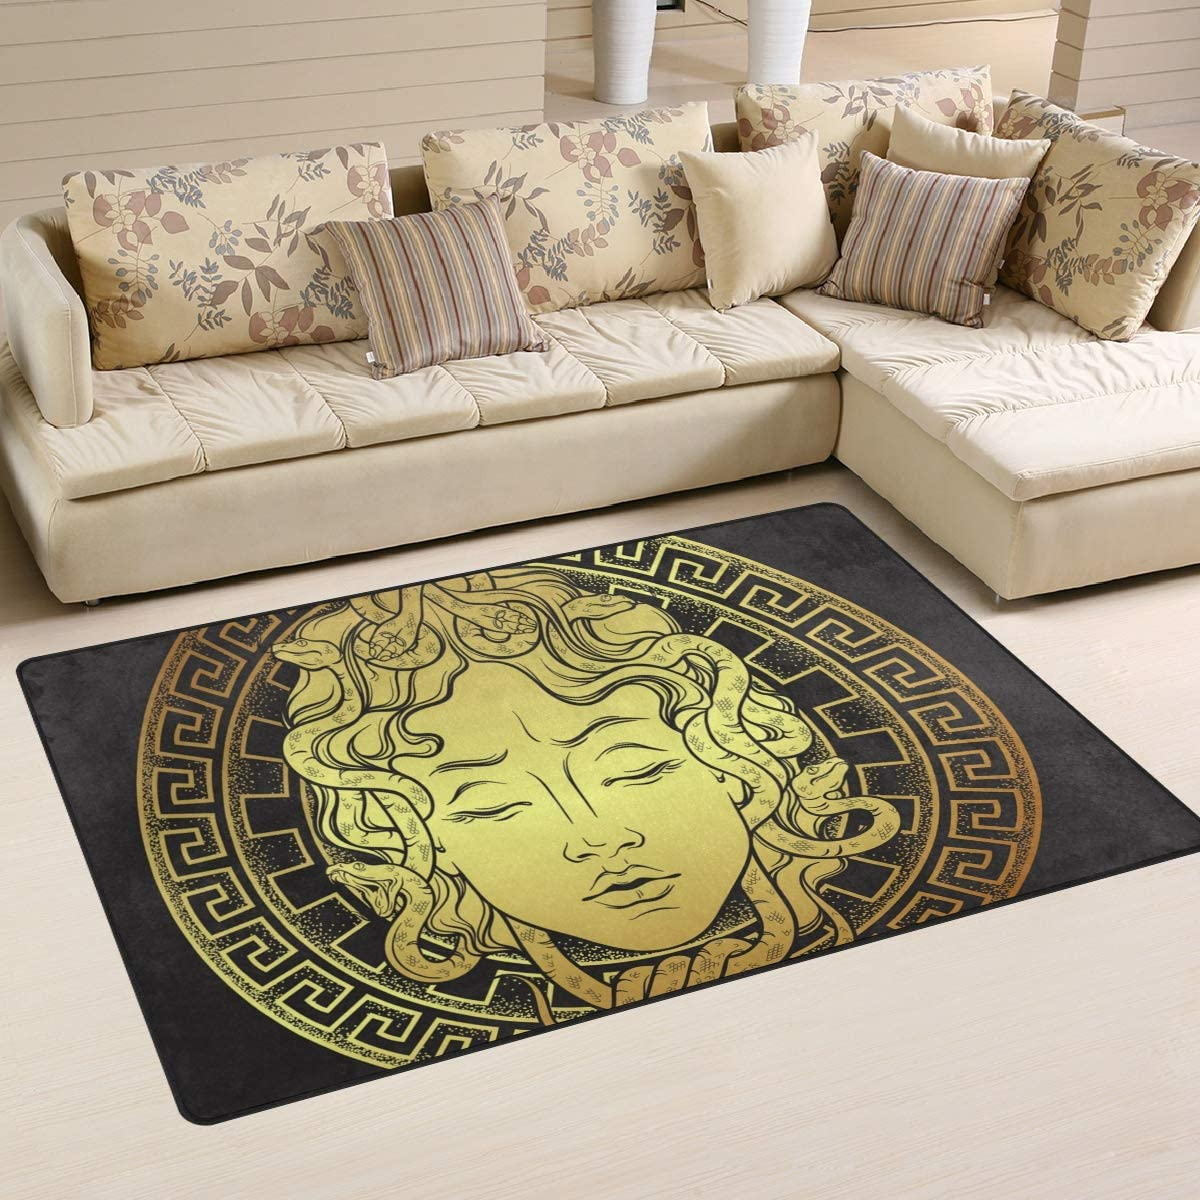 Tarity Area Rugs Gold Medusa Pattern Modern Rectangle Non-Skid Slip Floor Rug 60 x 39 Indoor Room Decorative Rugs Carpet for Living Room Bedroom Playing Room